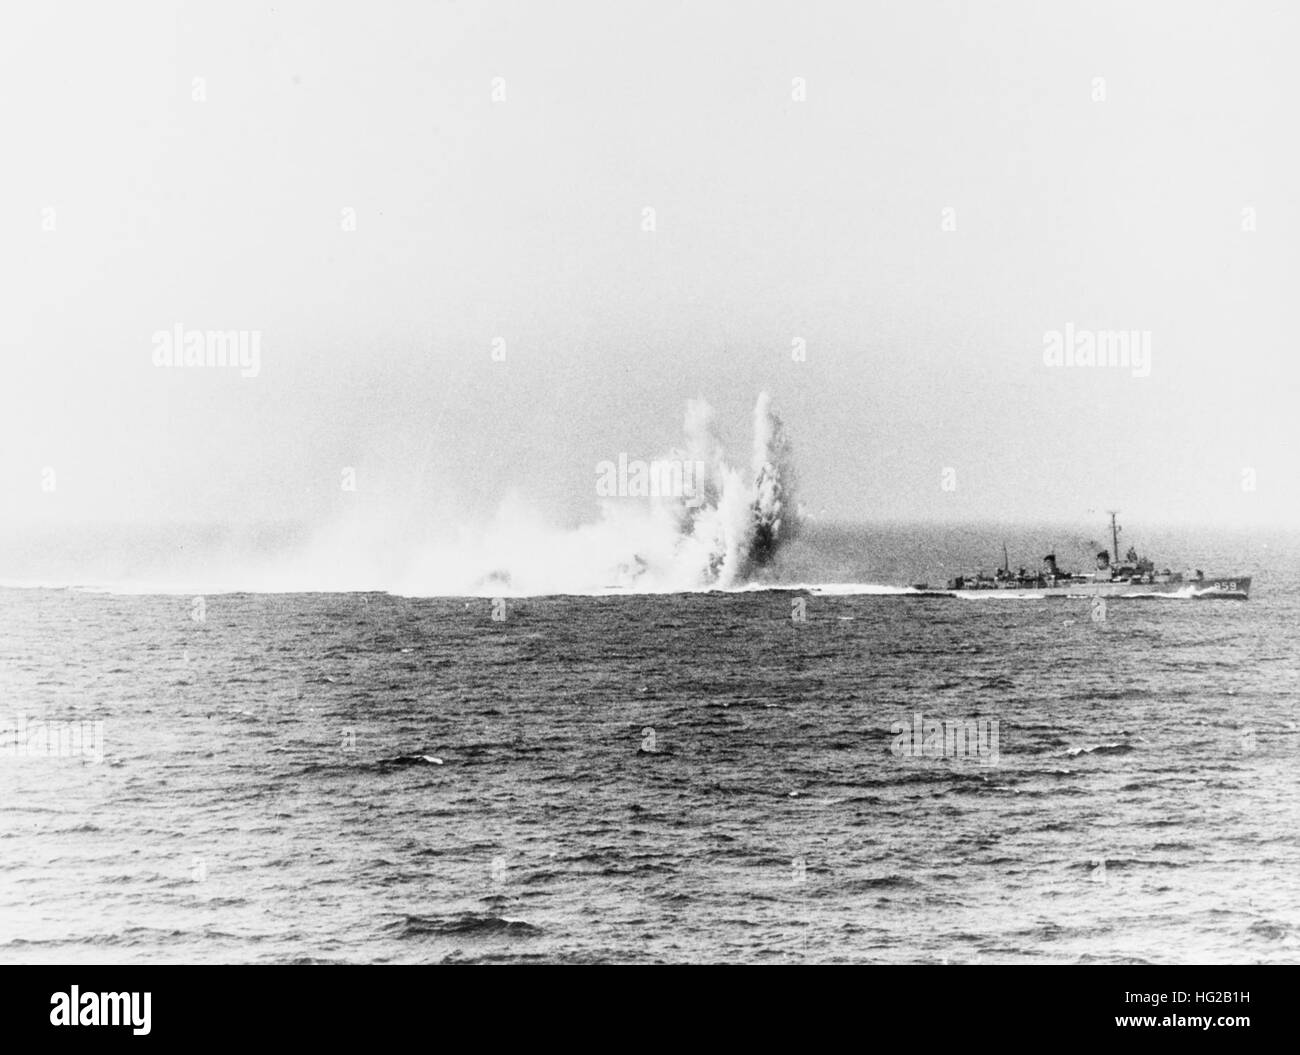 USS Norris (DD-859) drops depth charges in April 1950 - Stock Image